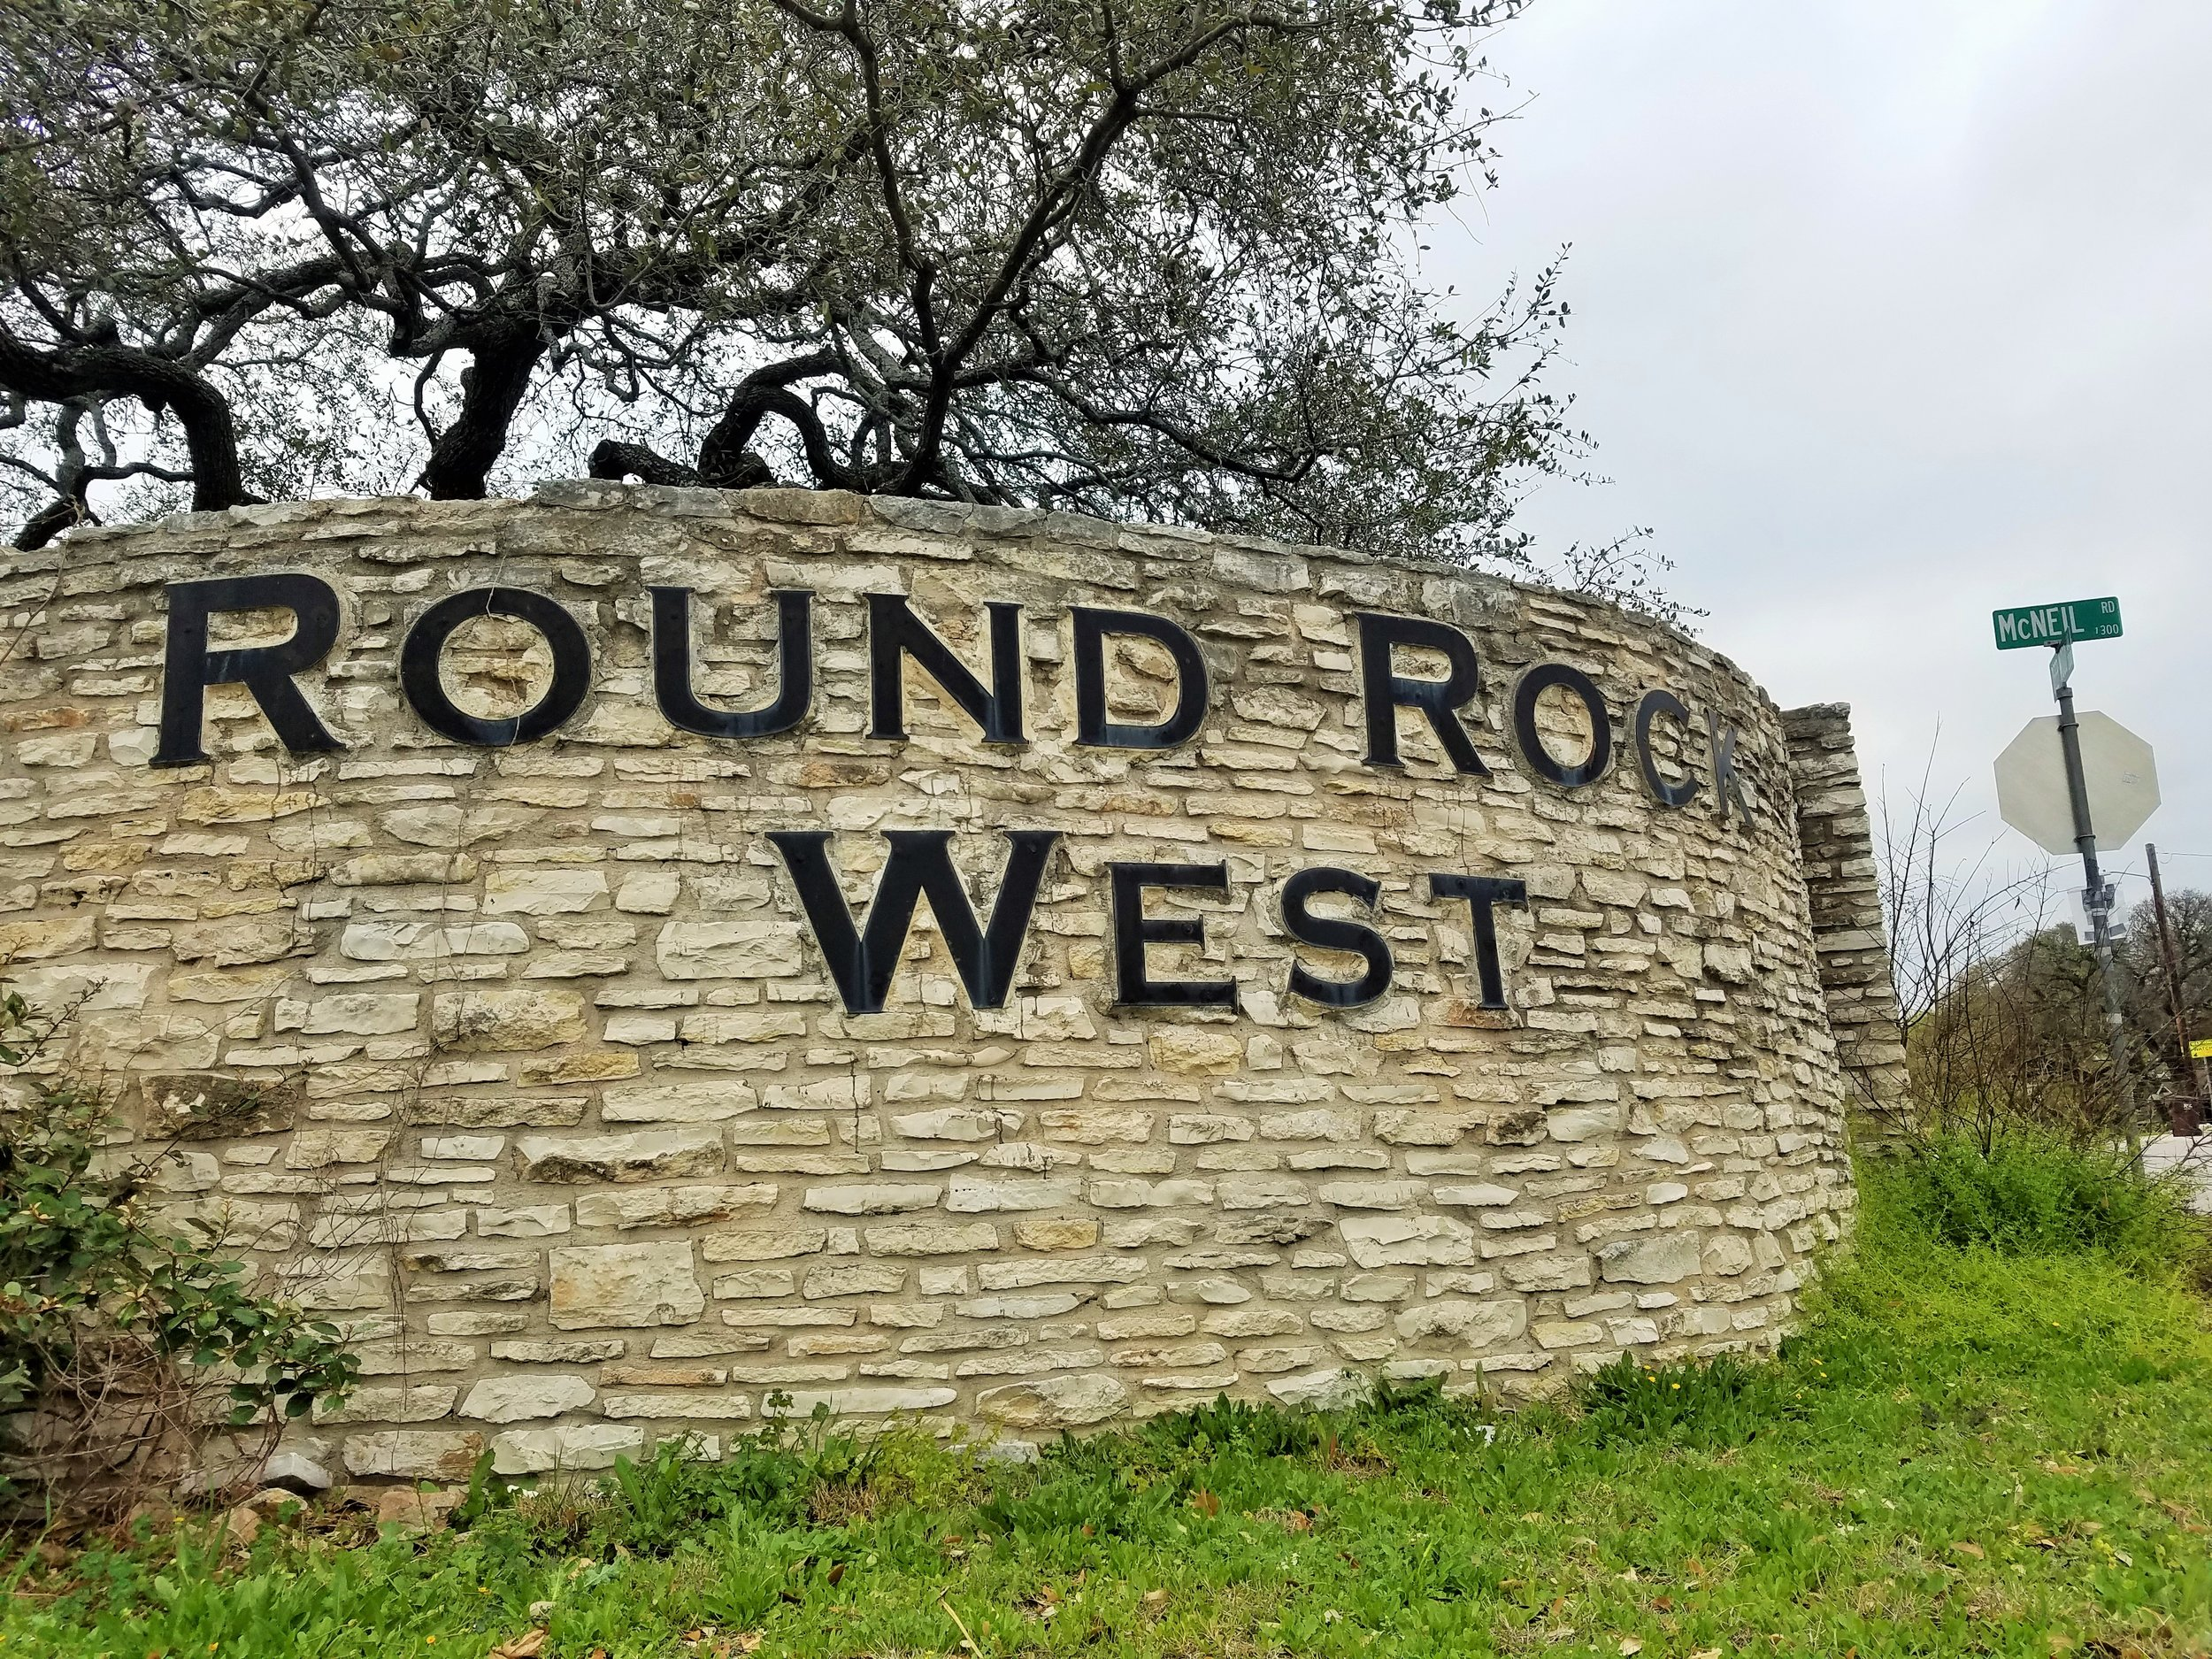 Greater Round Rock West    Learn More